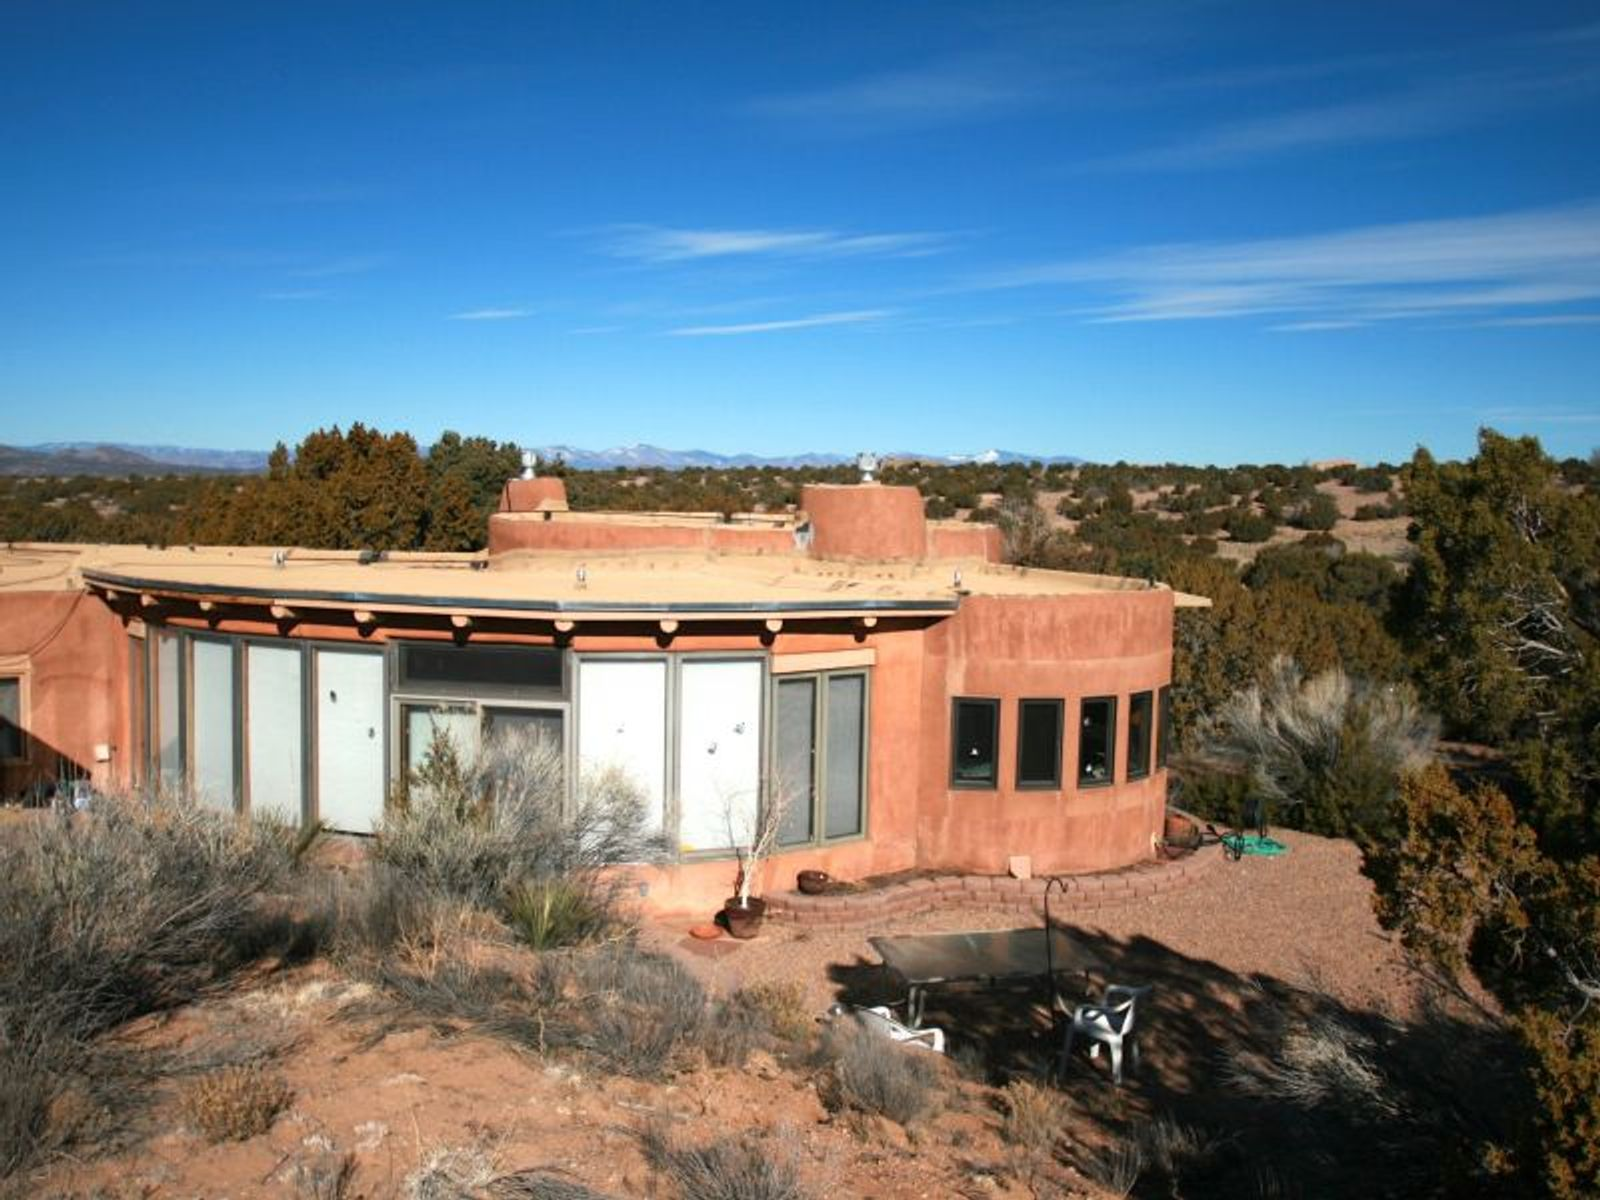 25  Calle El Gancho., Santa Fe NM Single Family Home - Santa Fe Real Estate